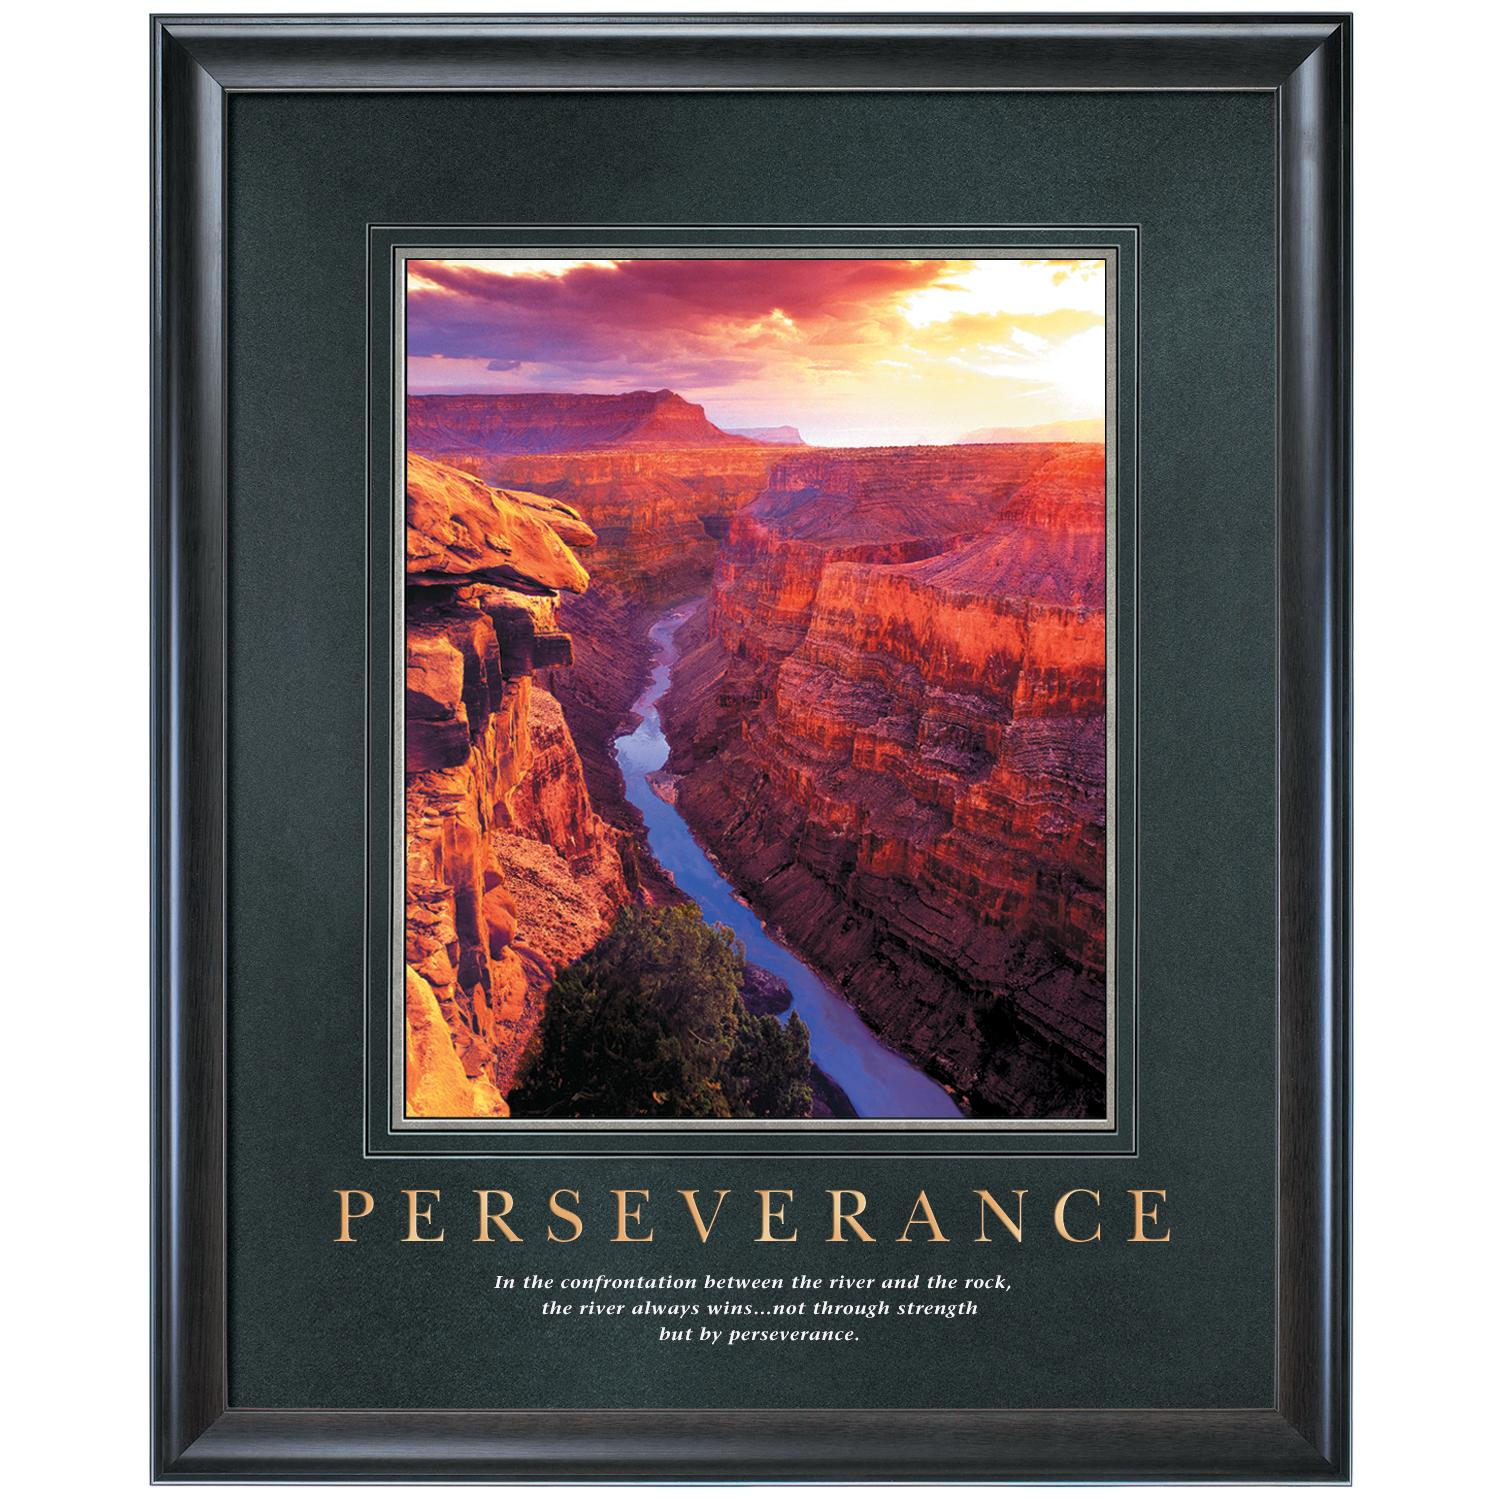 Inspirational Quotes About Perseverance: Motivational Quotes Perseverance. QuotesGram